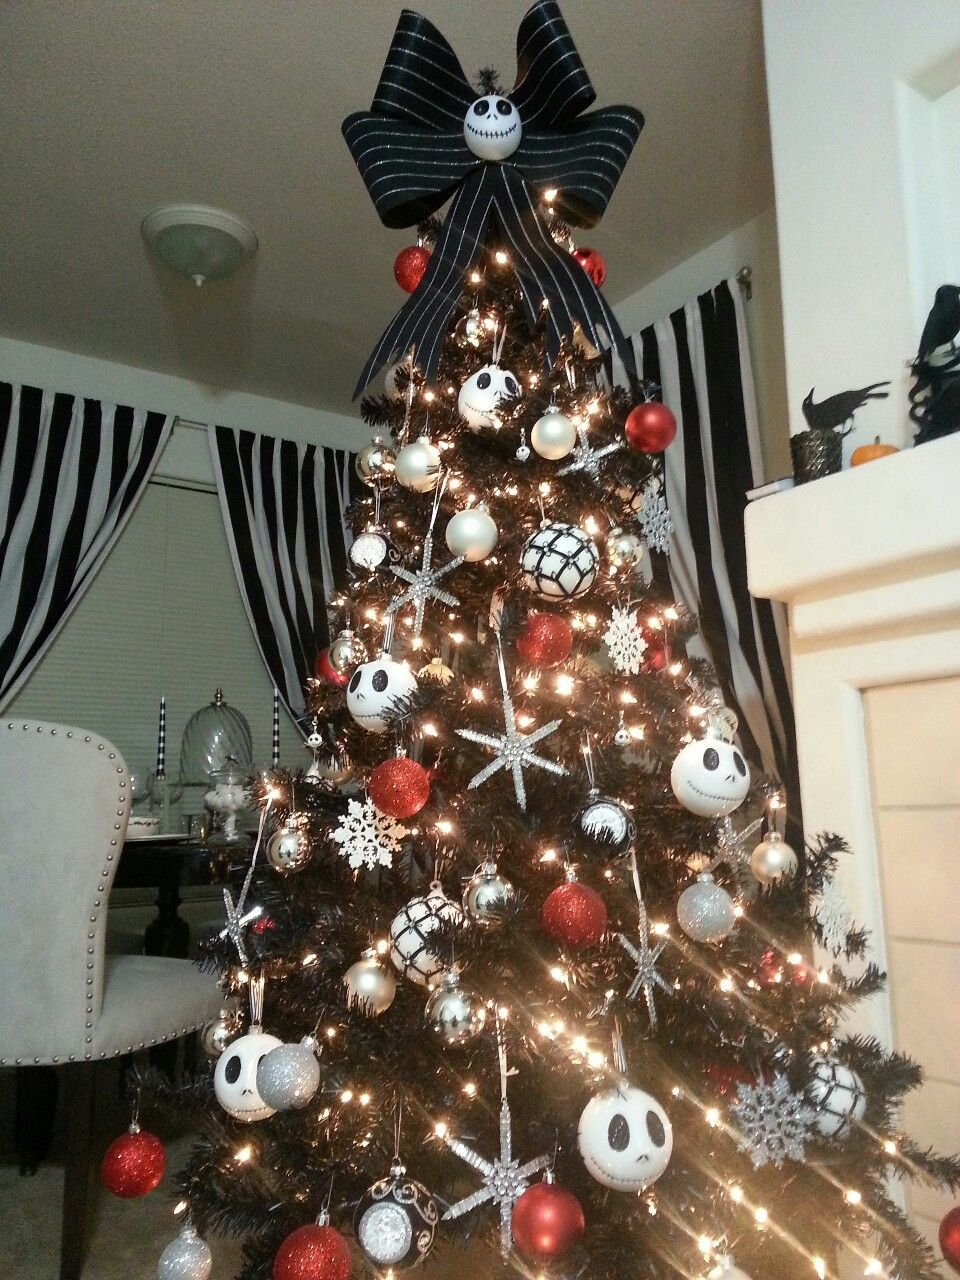 Disney Nightmare Before Christmas Tree [Tumblr] | TNBC | Pinterest ...